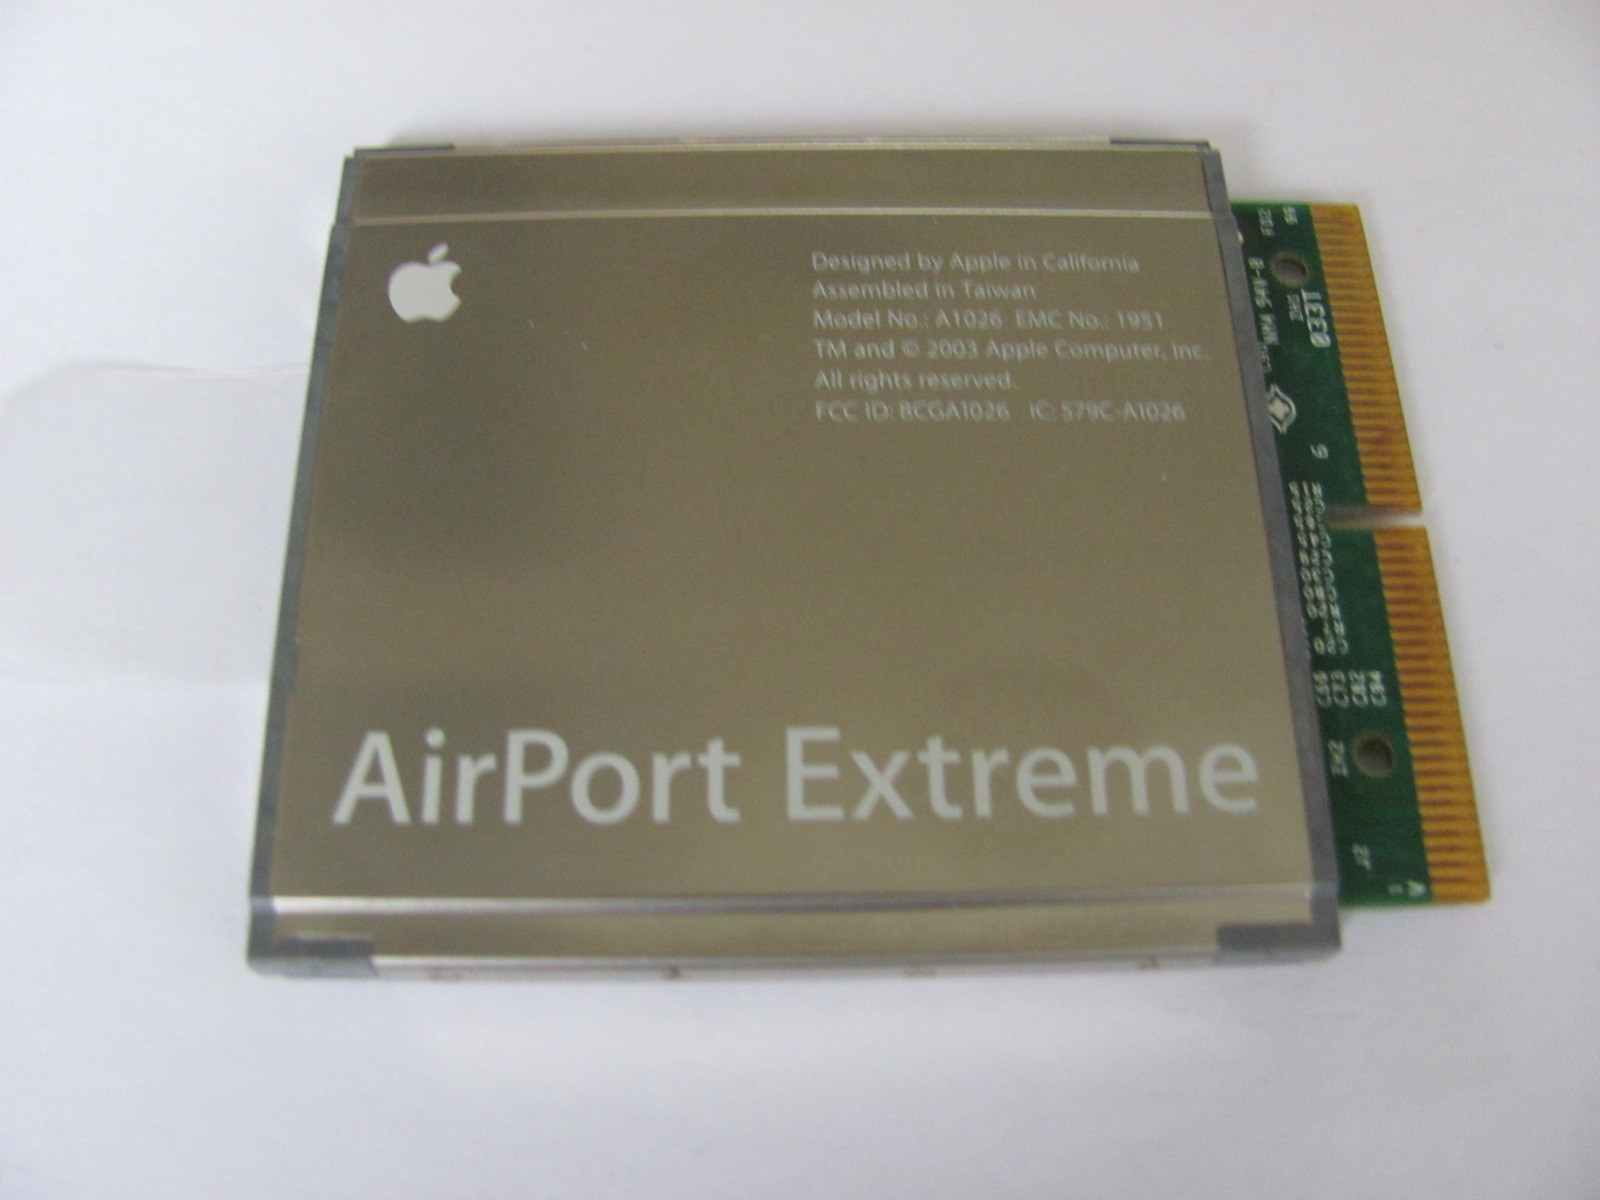 apple airport extreme model a1034 internet card